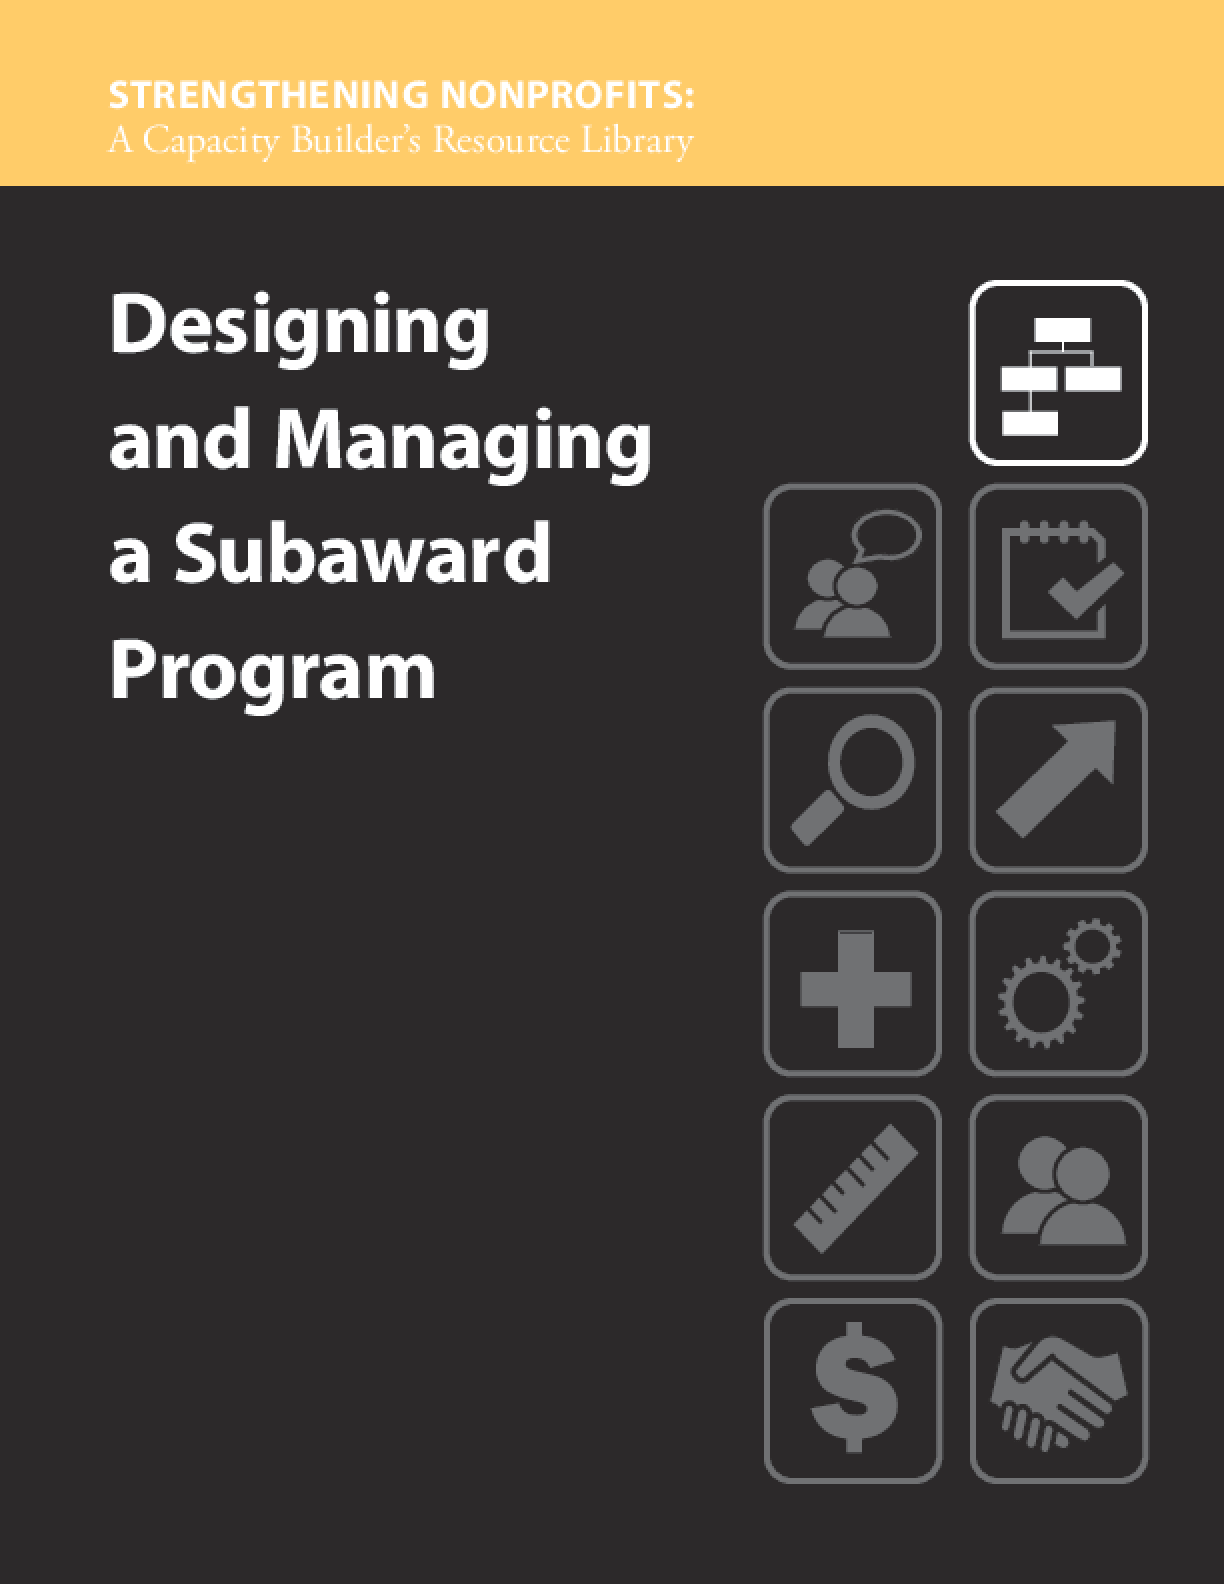 Designing and Managing a Subaward Program